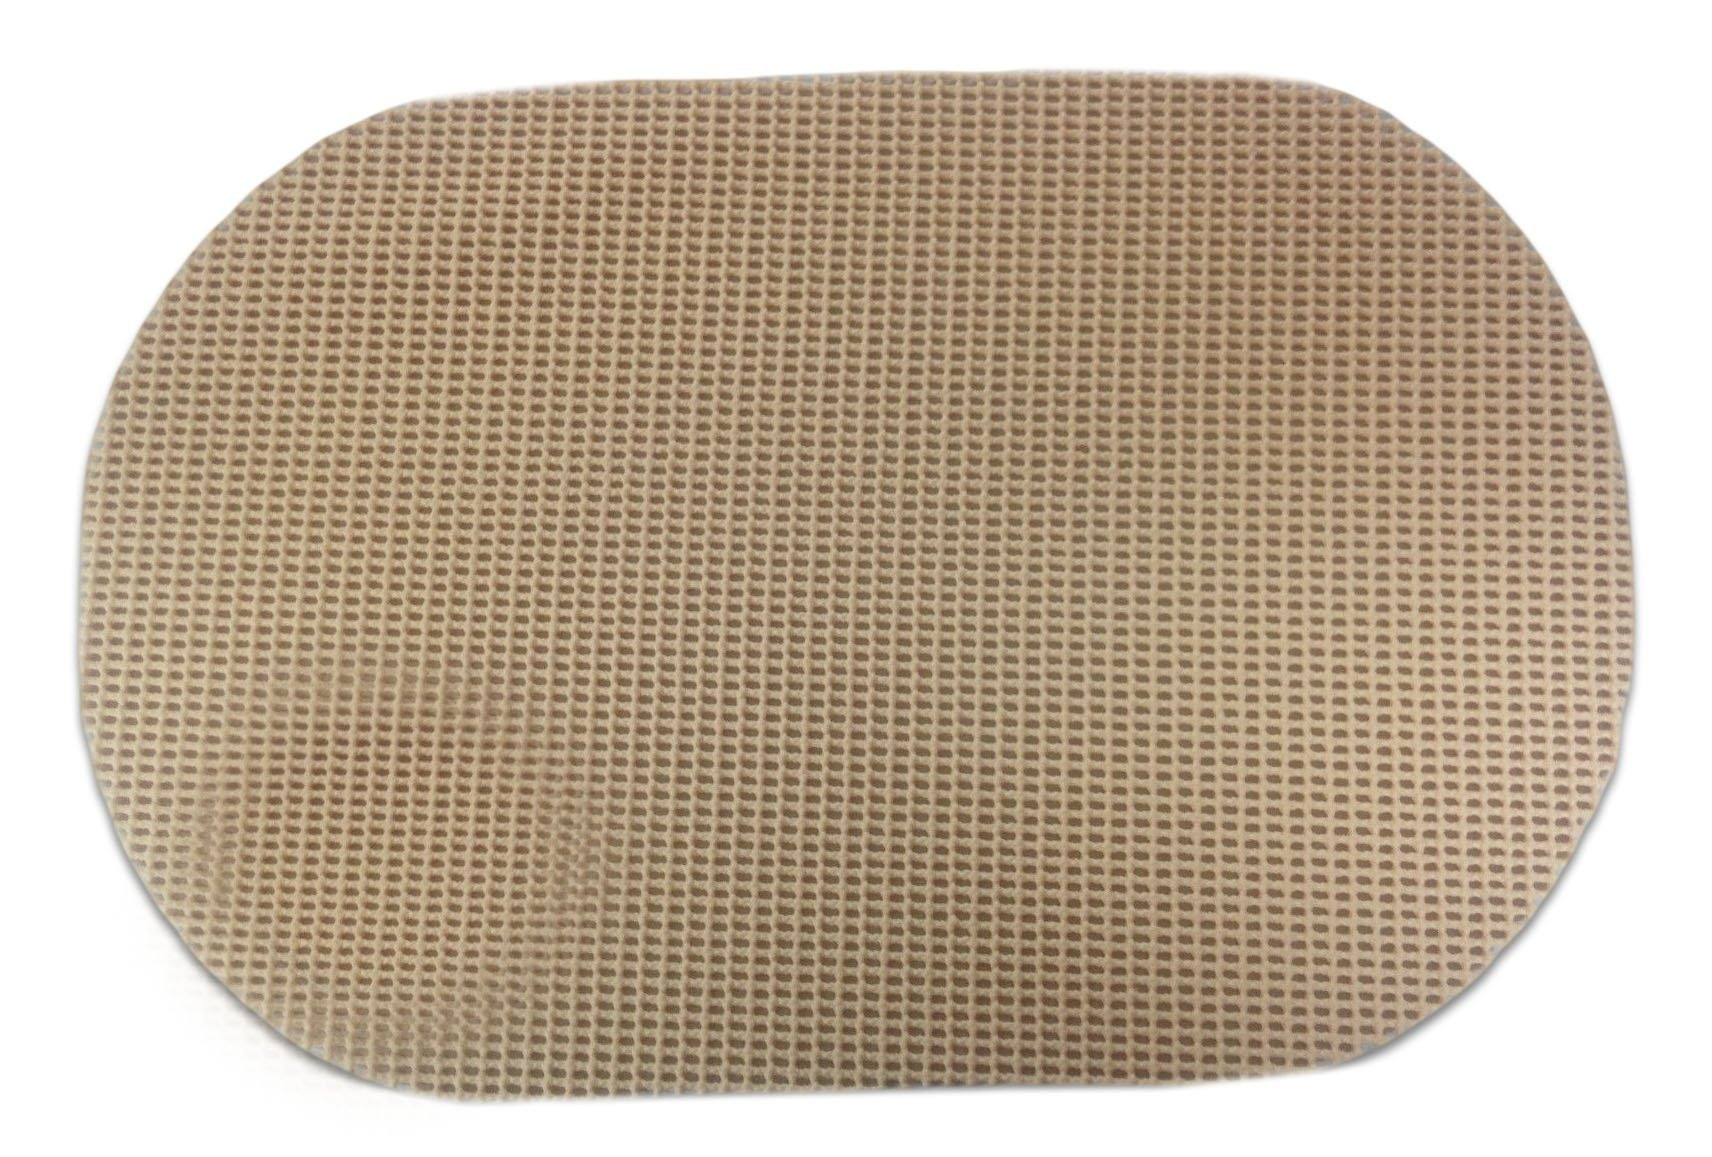 "Unique & Custom {12'' x 18'' Inch} Set Pack of 6 Oval ""Non-Slip Grip Texture"" Large Table Placemats Made of Flexible Vinyl w/ Light Simple Rustic Country Woven Waffle Perforated Design [Tan Color]"